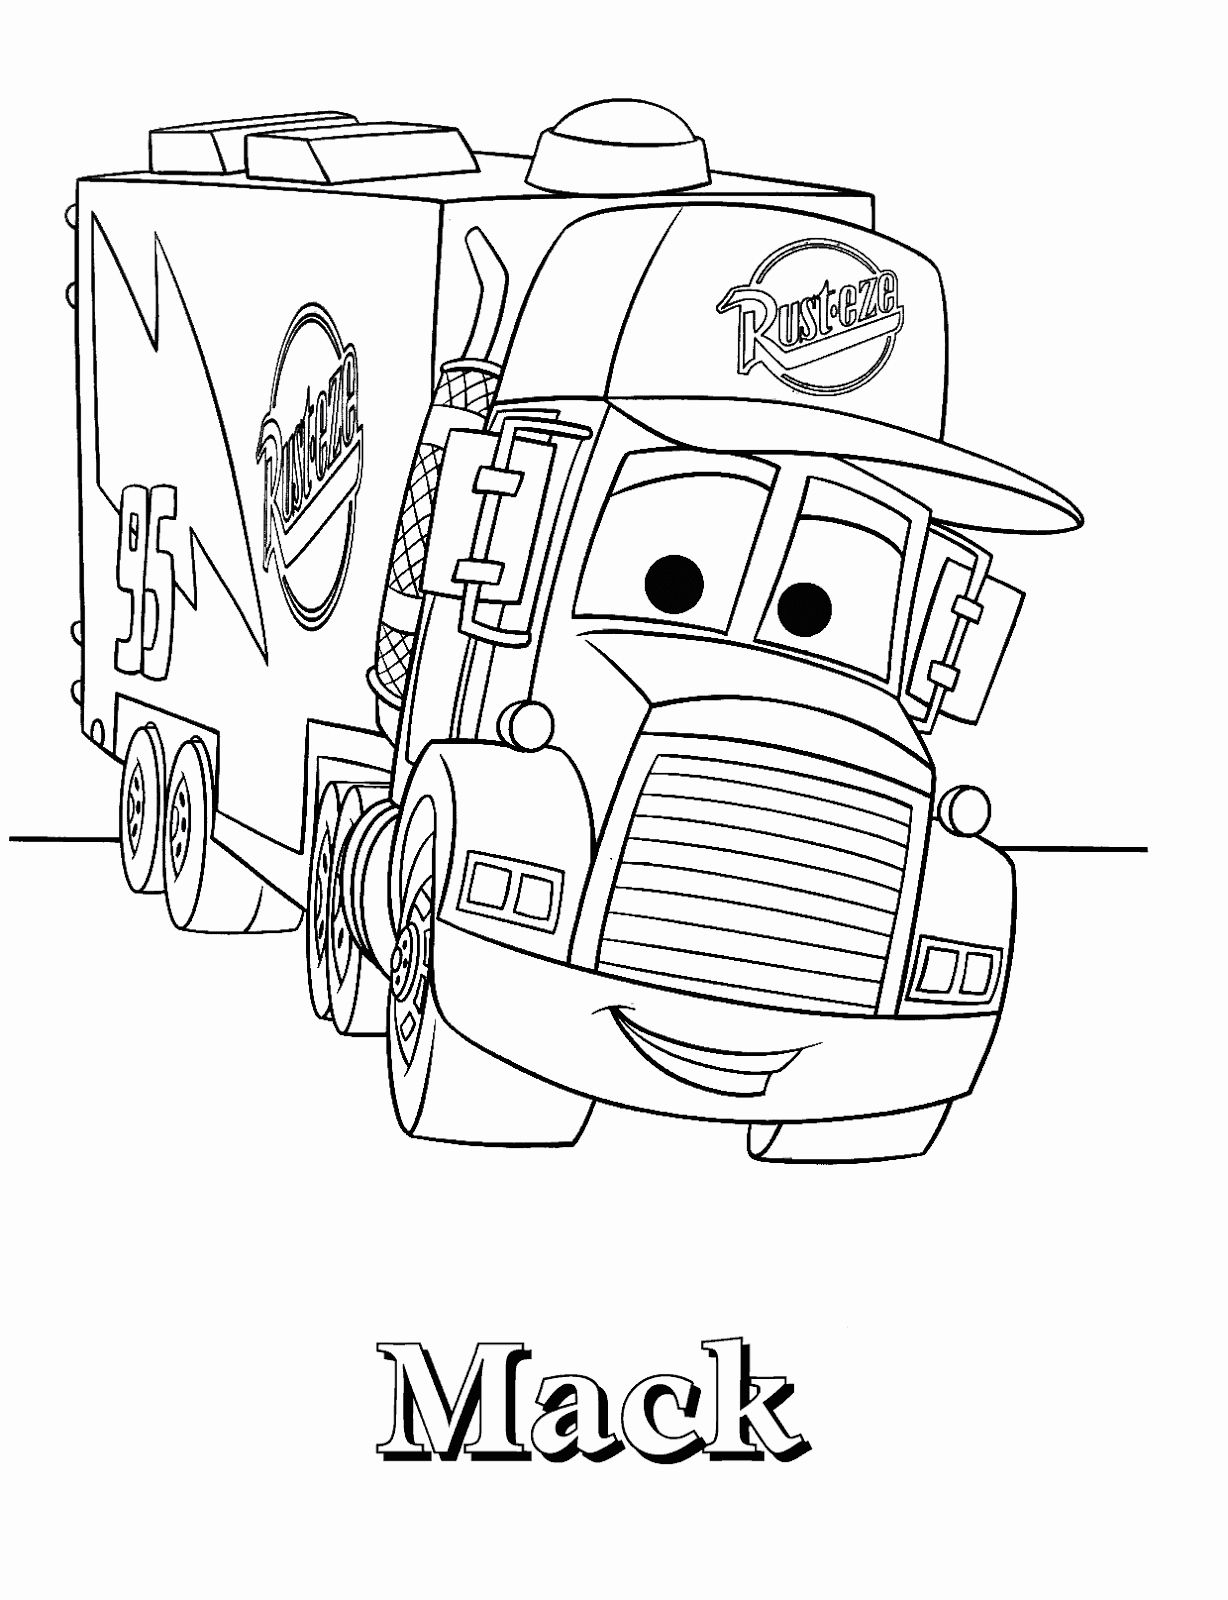 Disney Cars Coloring Page Fresh Fun Learn Free Worksheets For Kid Lightning Mcqueen Cars Coloring Pages Disney Coloring Pages Truck Coloring Pages